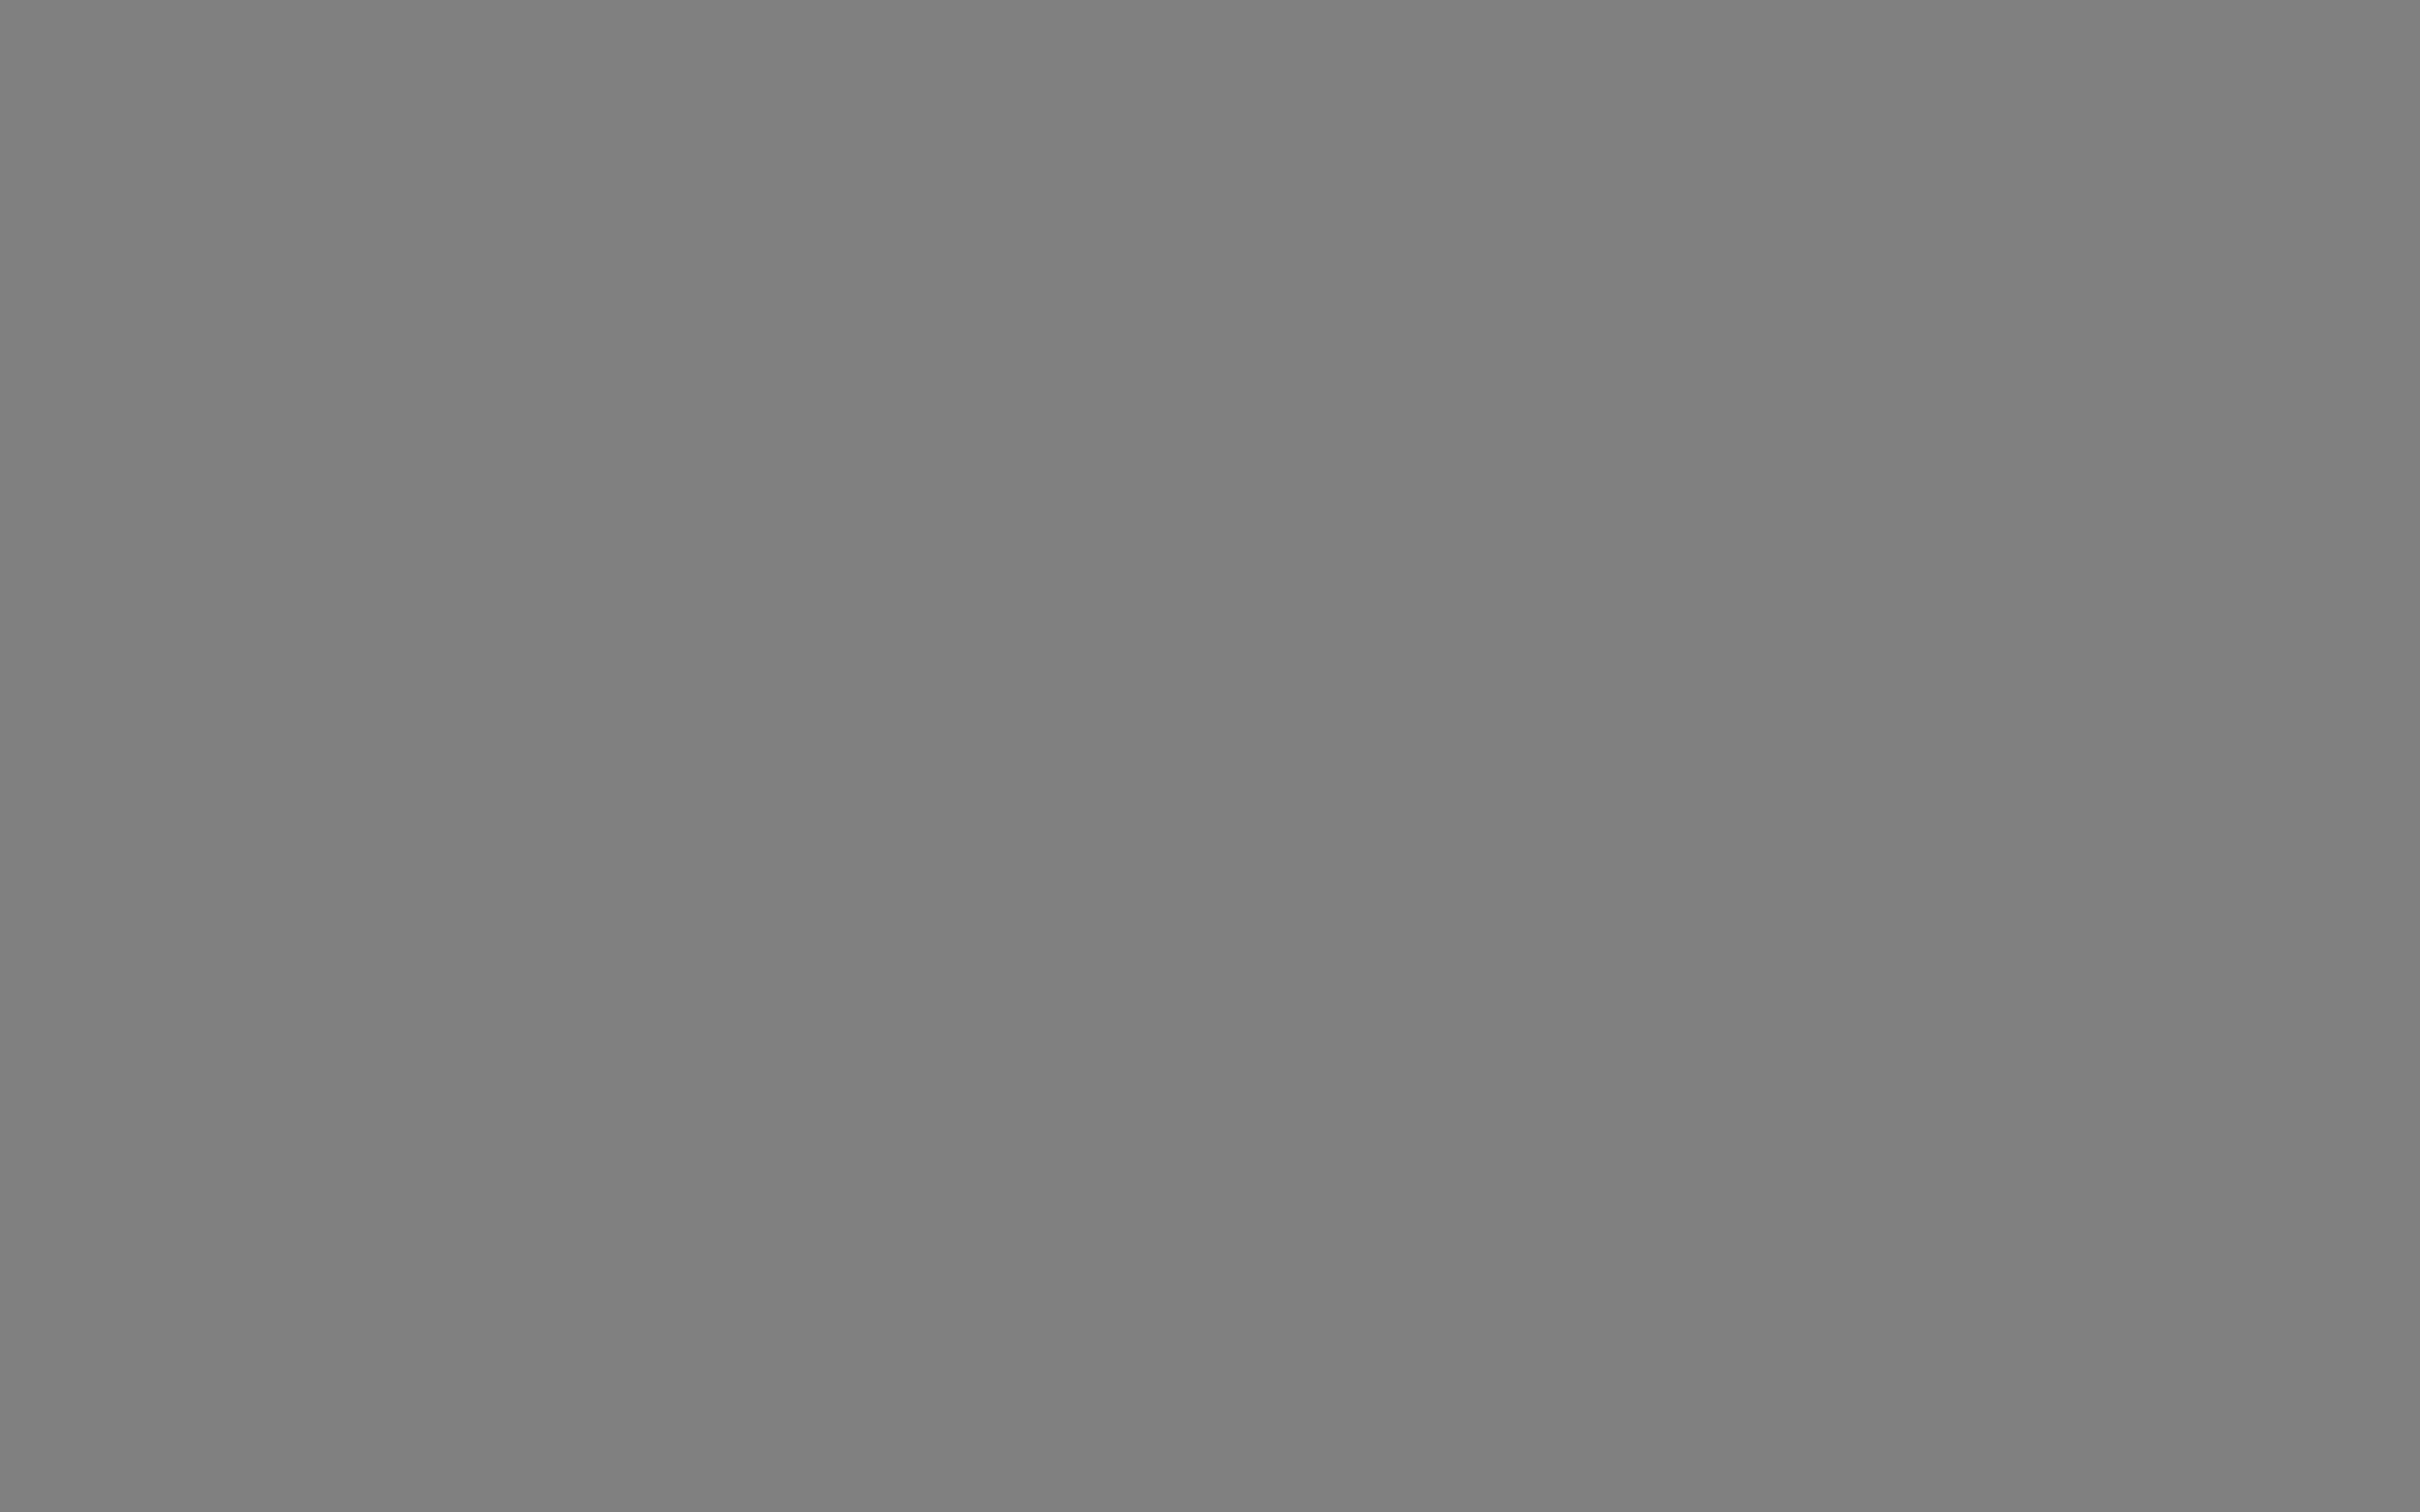 2560x1600 Gray Solid Color Background